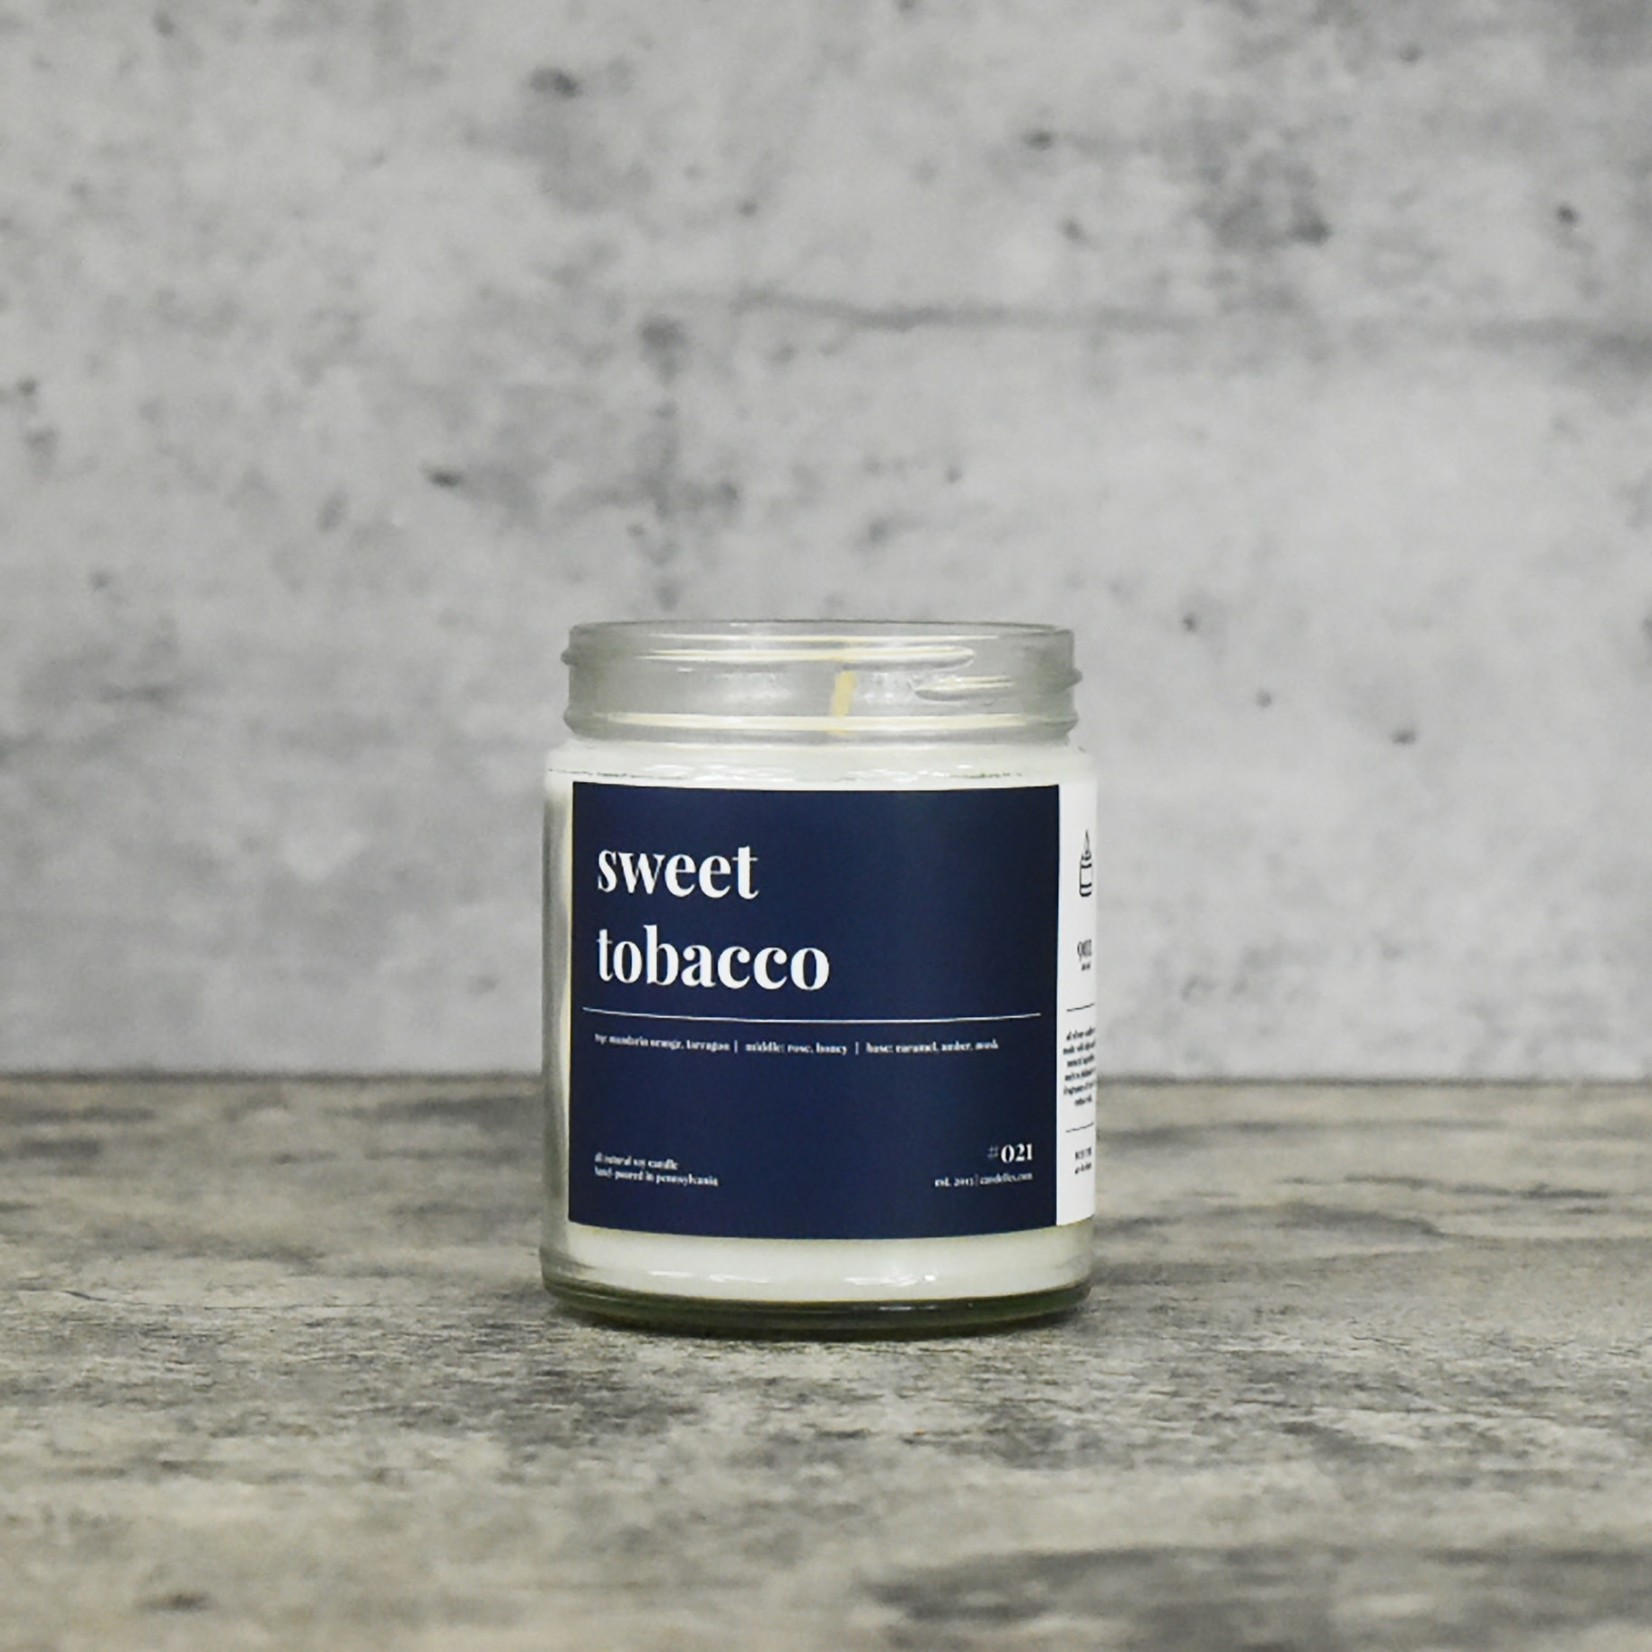 Candelles Soy Candles Sweet Tobacco 9 oz Soy Candle